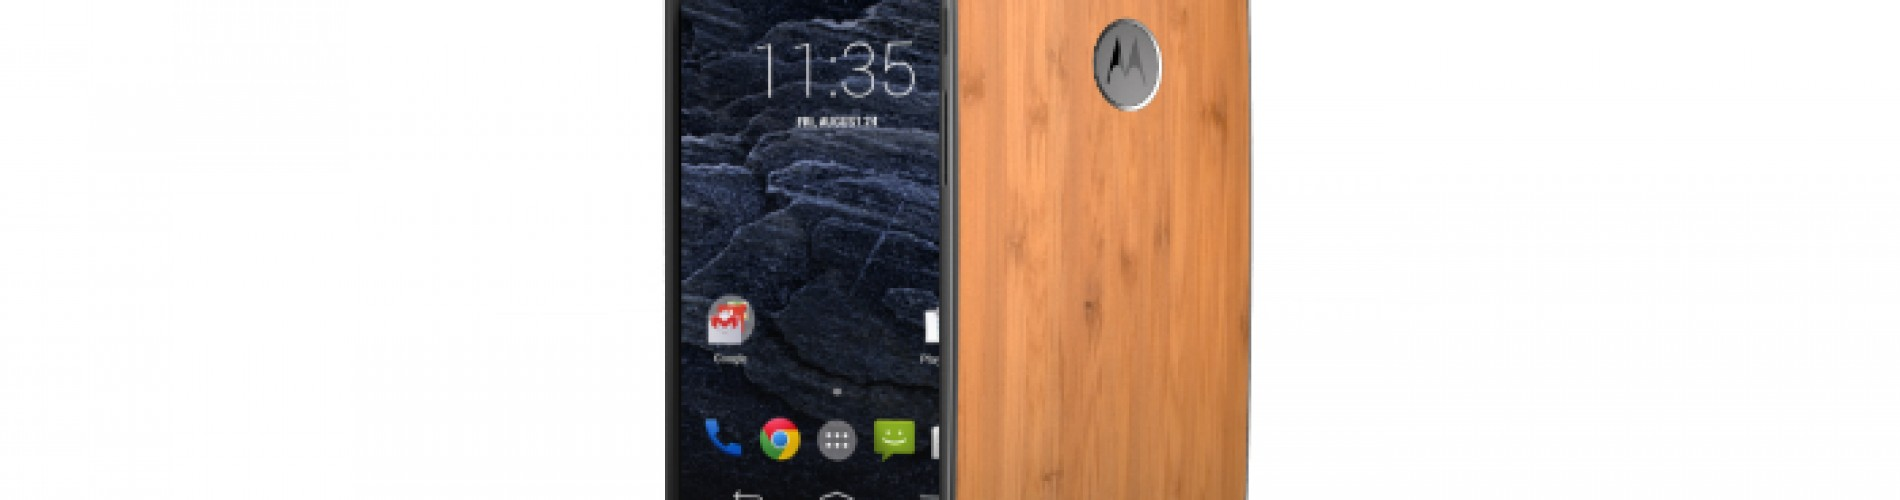 Motorola starts Android 5.1 update for a grouping of devices